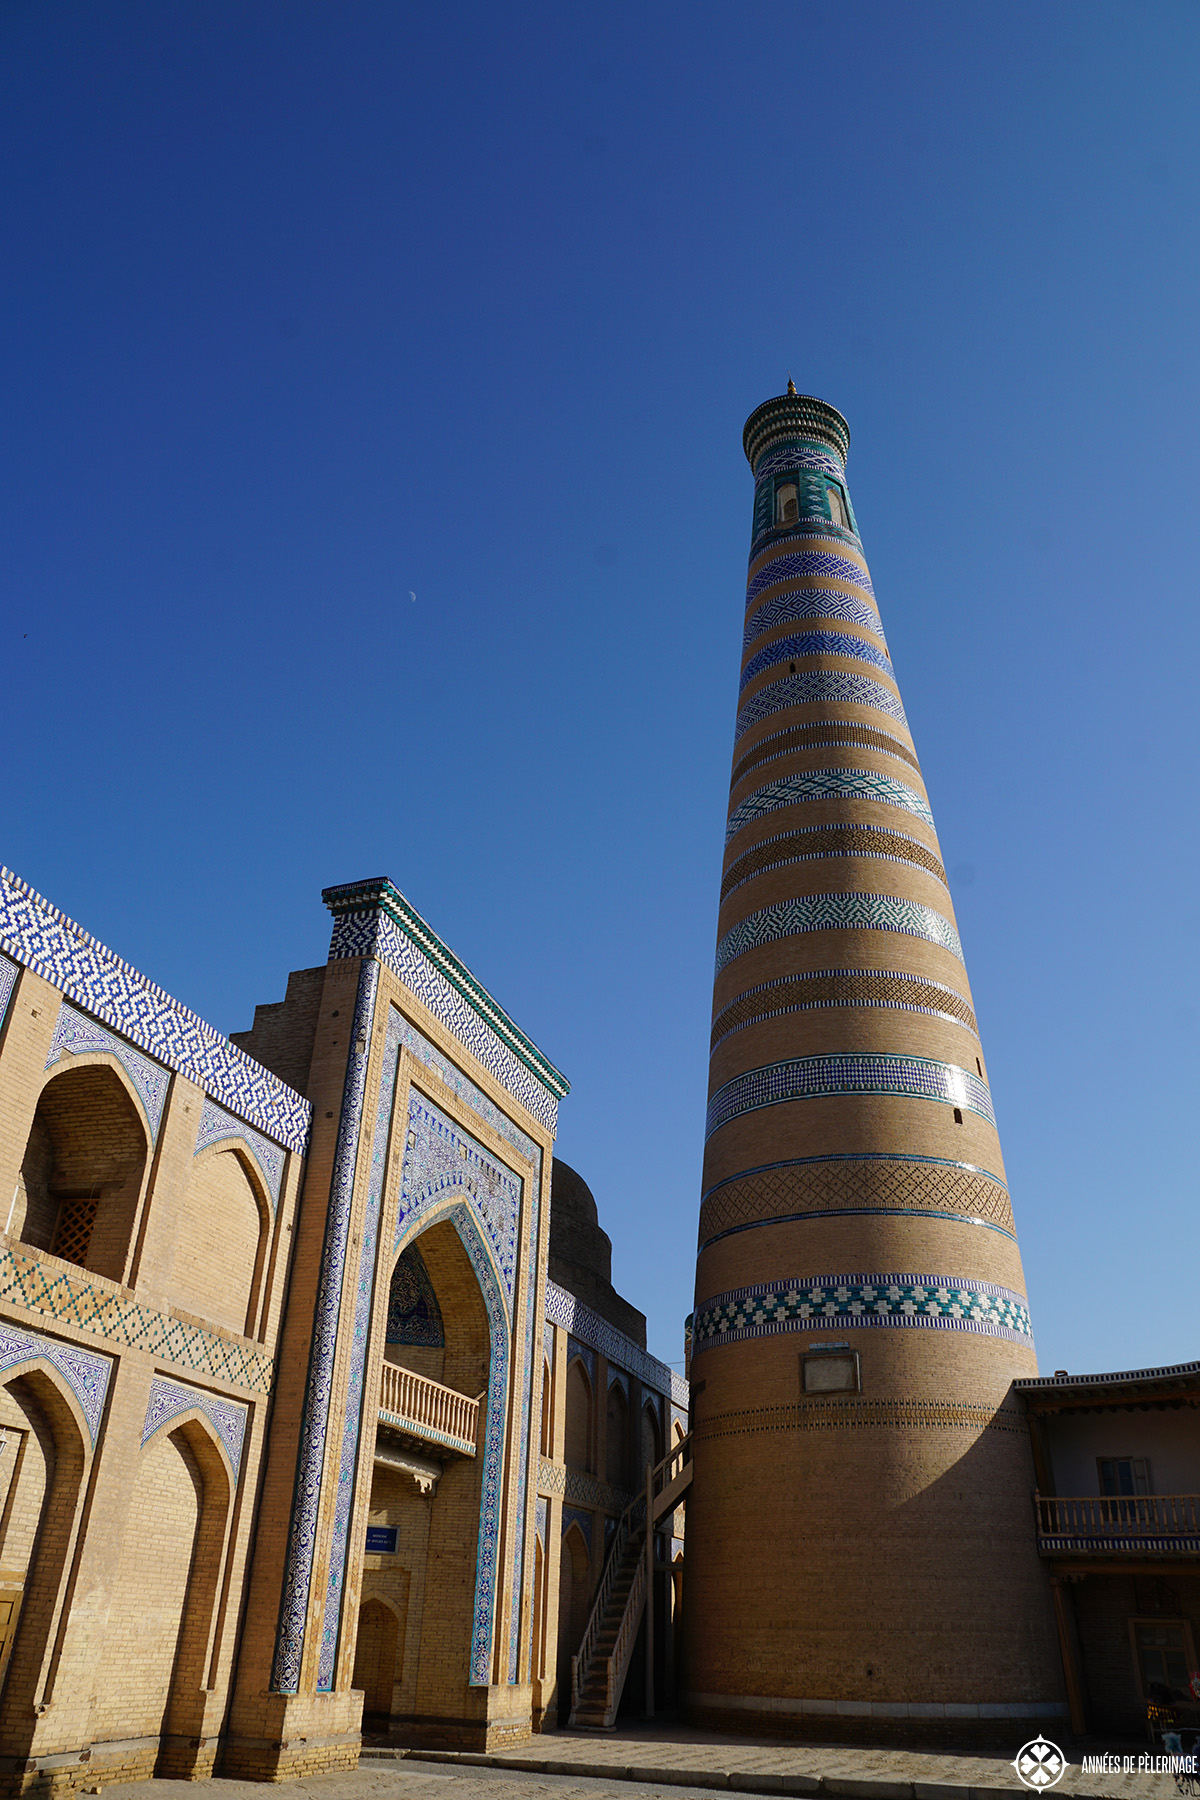 The Islam-Khodja complex and it's huge minaret in Khiva, Uzbekistan